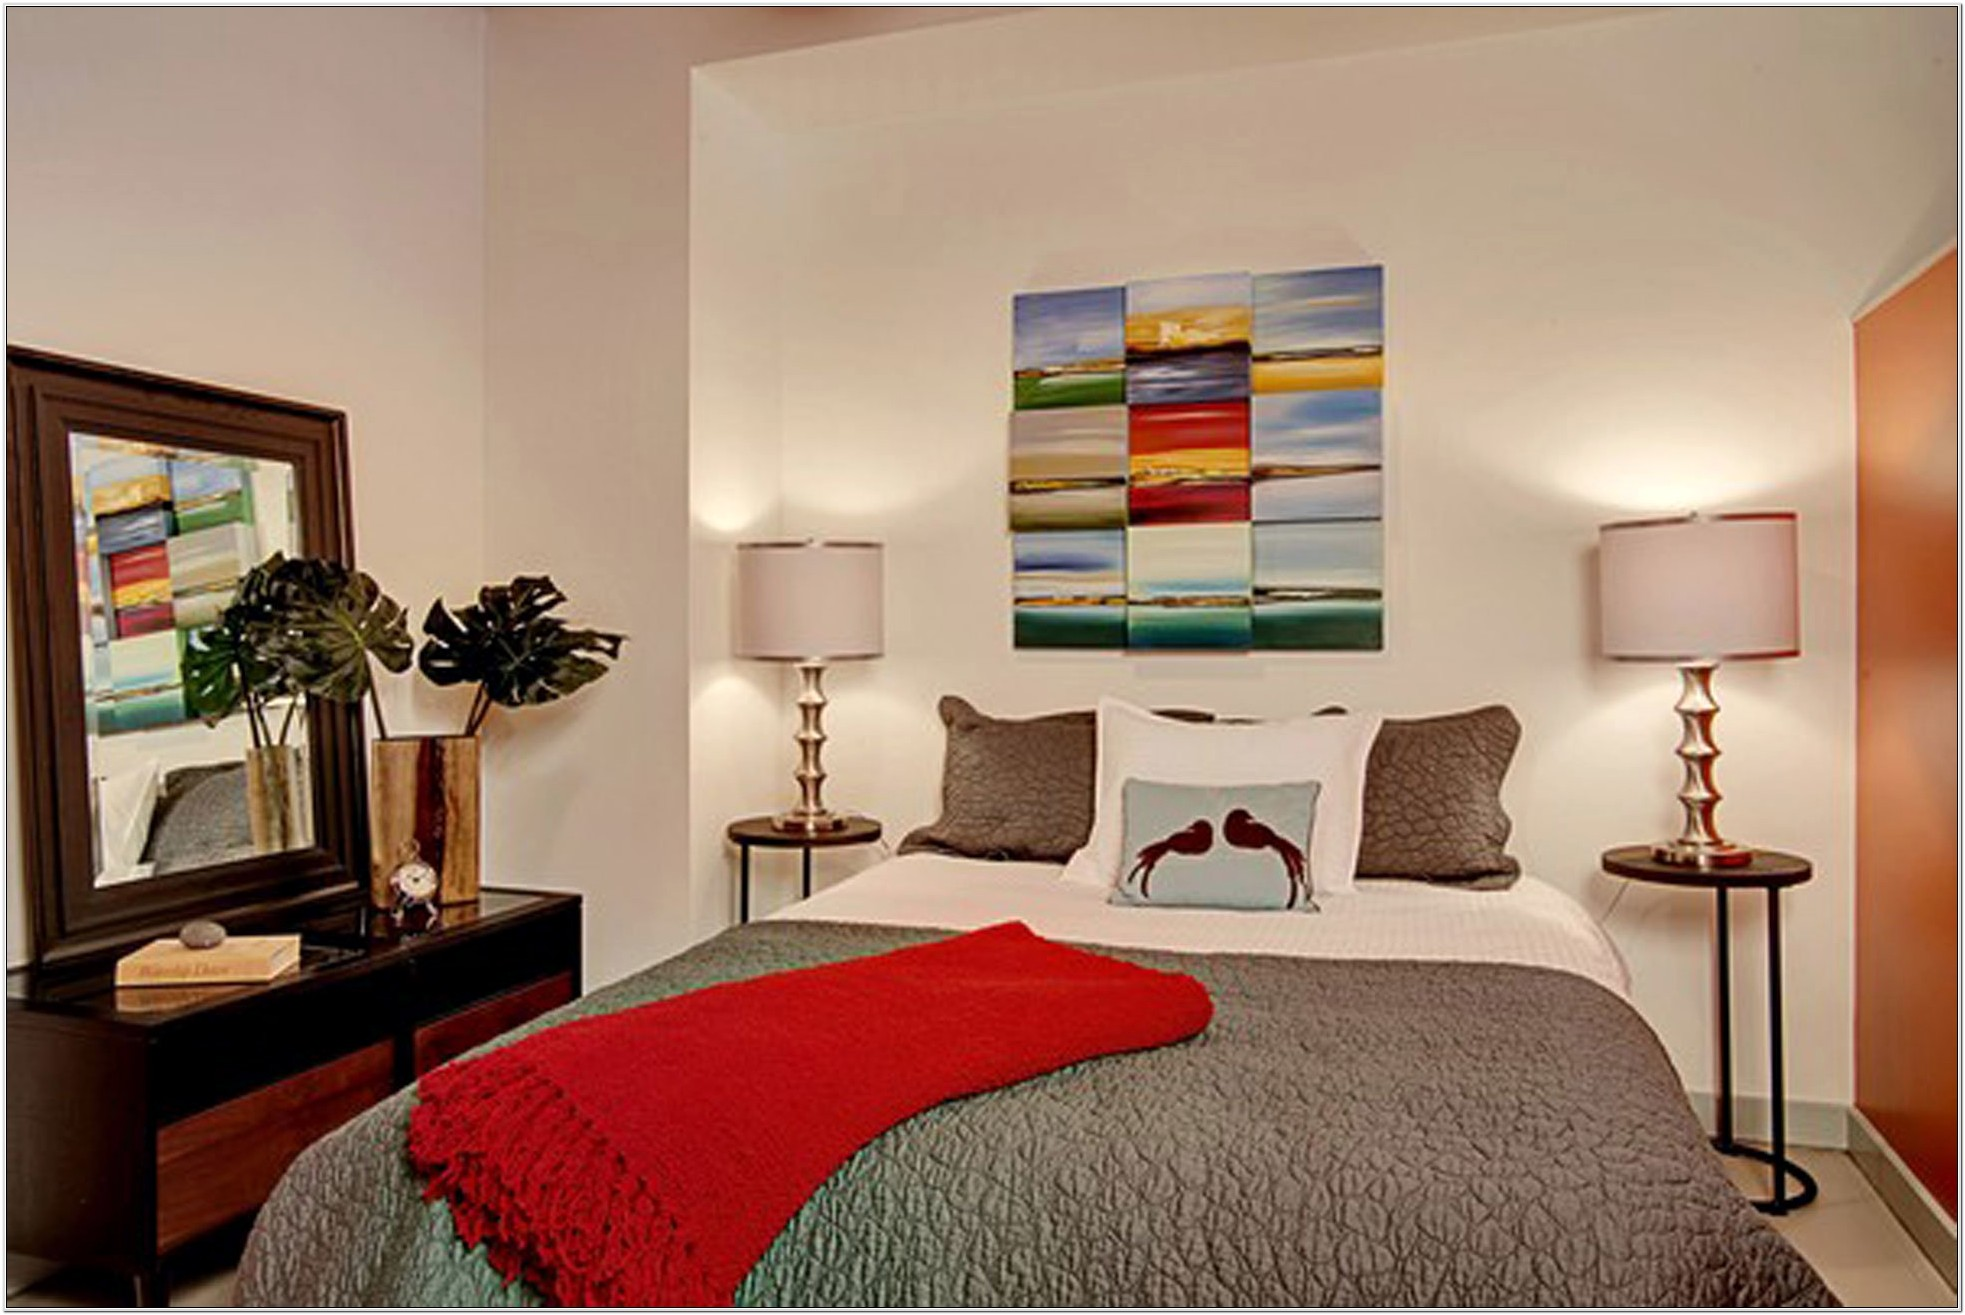 Decorating Bedroom With One Window